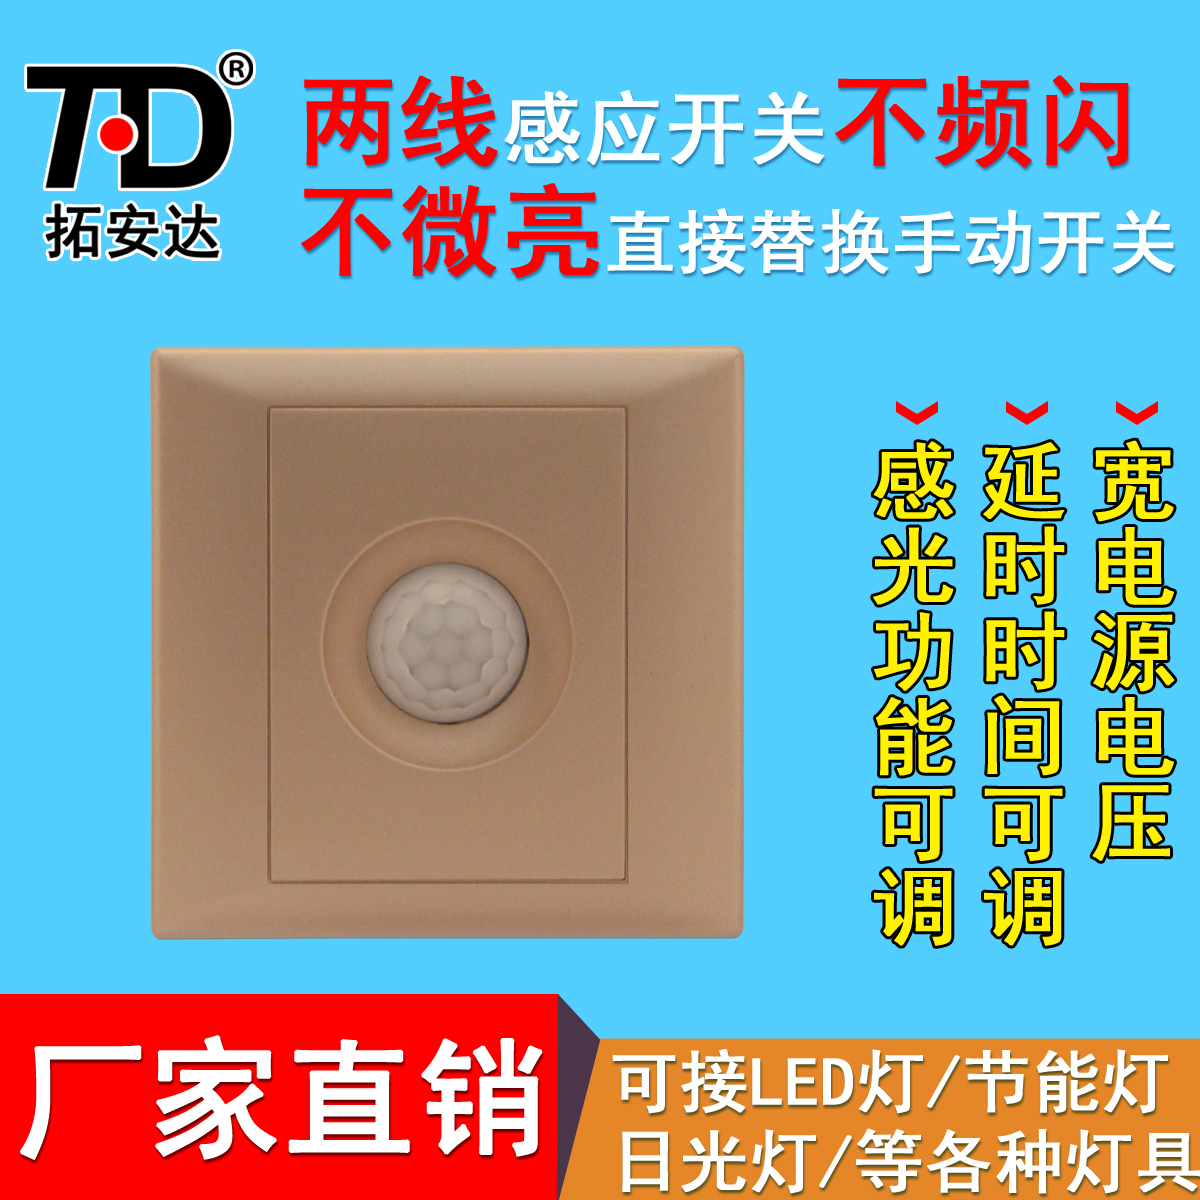 86 Type Infrared Human Body Induction Switch Time Delay Can Control LED Energy-saving Lamp 220V Corridor Attract Top 1x led night light lamps motion sensor nightlight pir intelligent led human body motion induction lamp energy saving lighting